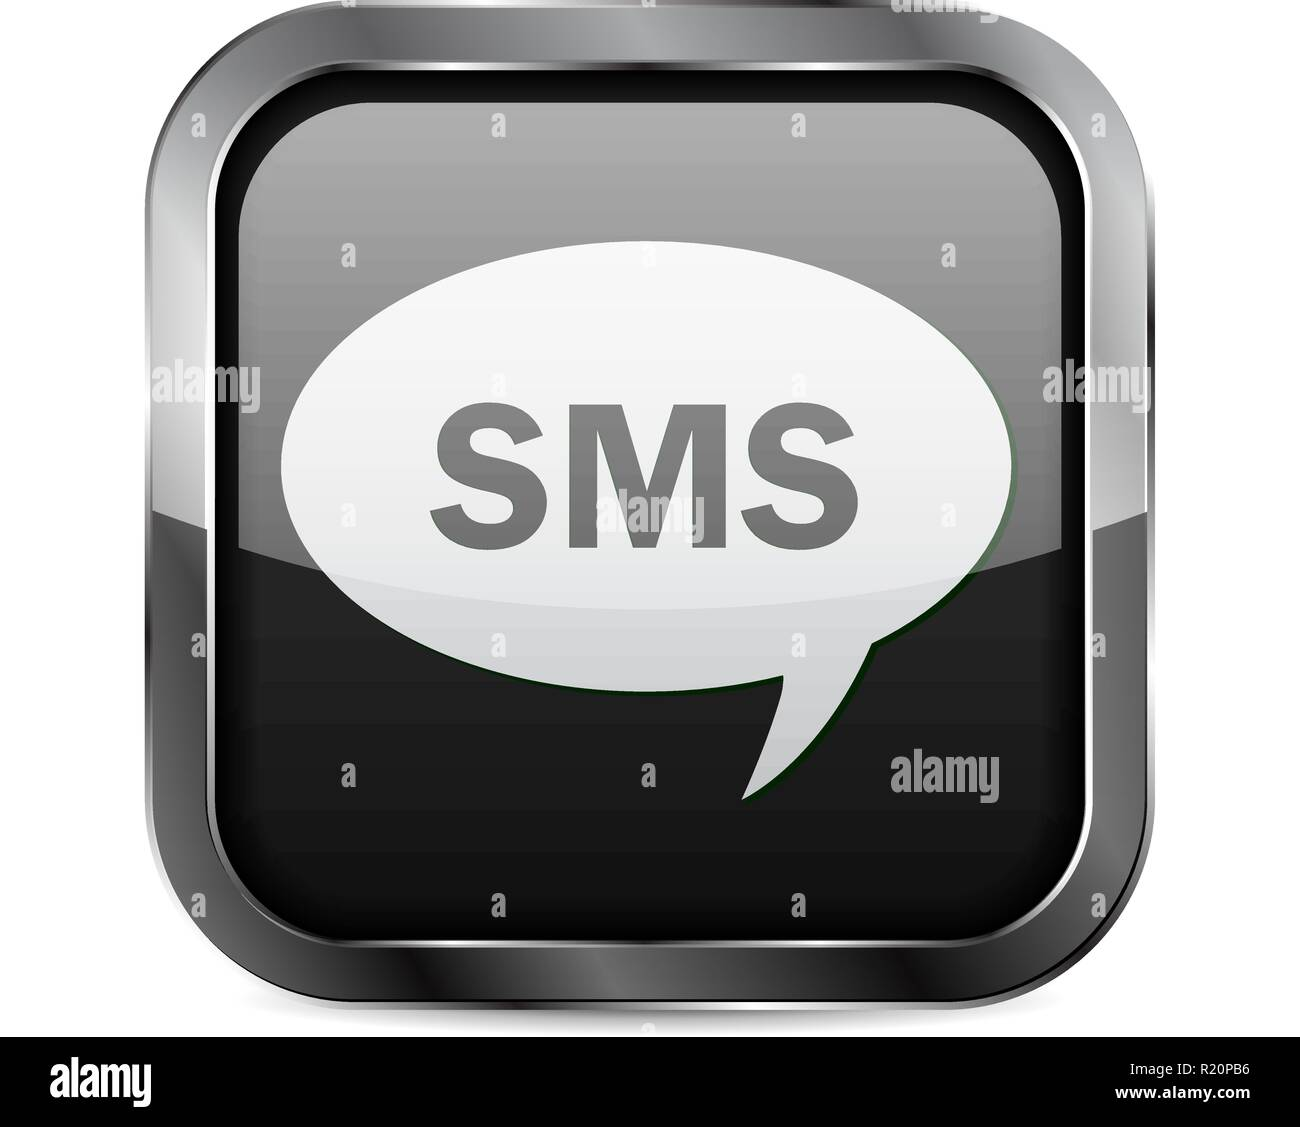 SMS button. Black glass 3d icon with metal frame - Stock Image